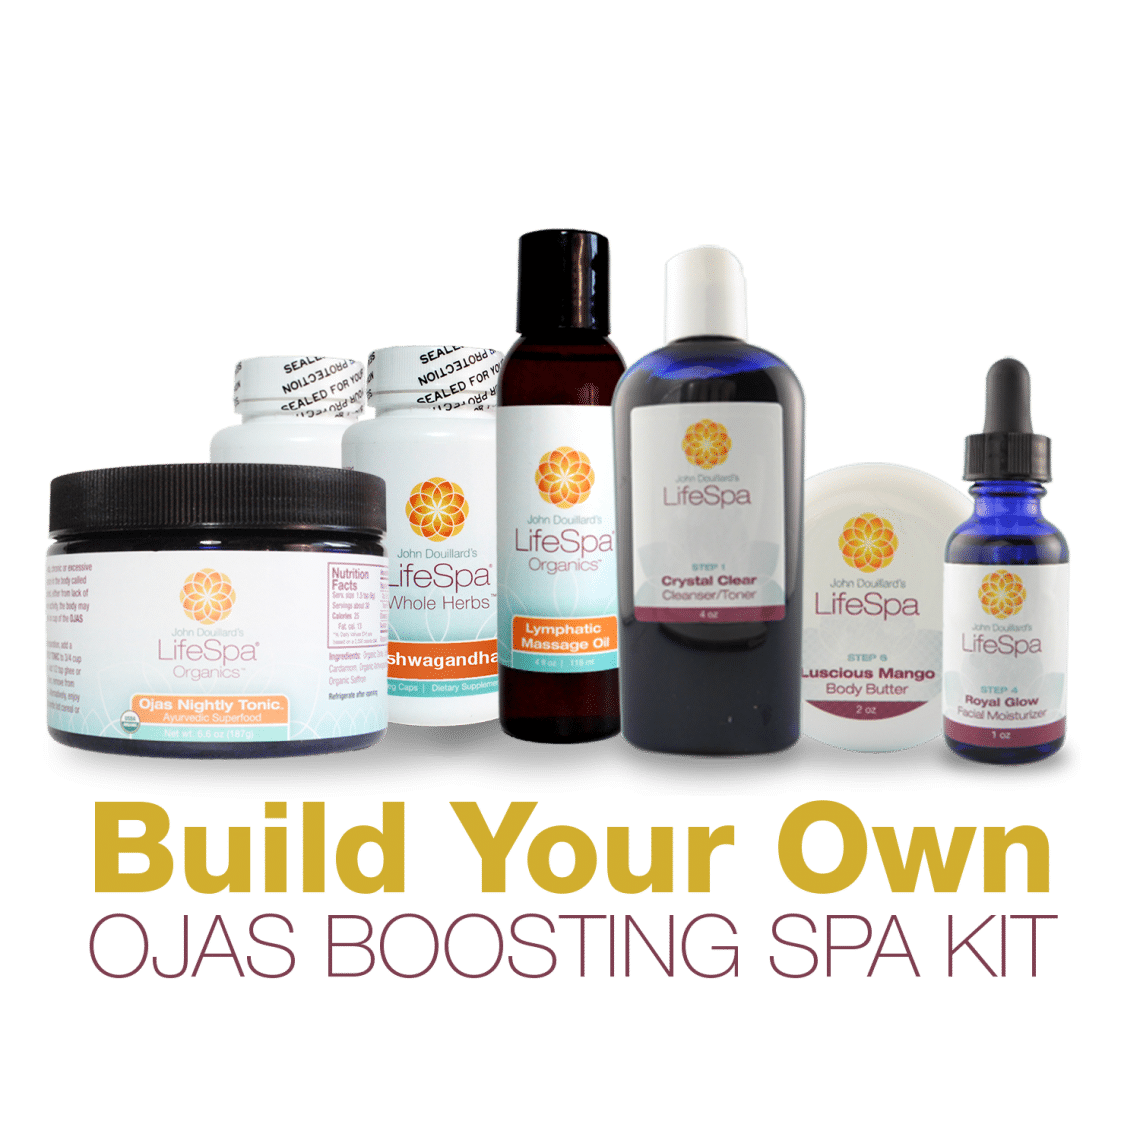 Build-Your-Own: Ojas-Boosting Spa Kit